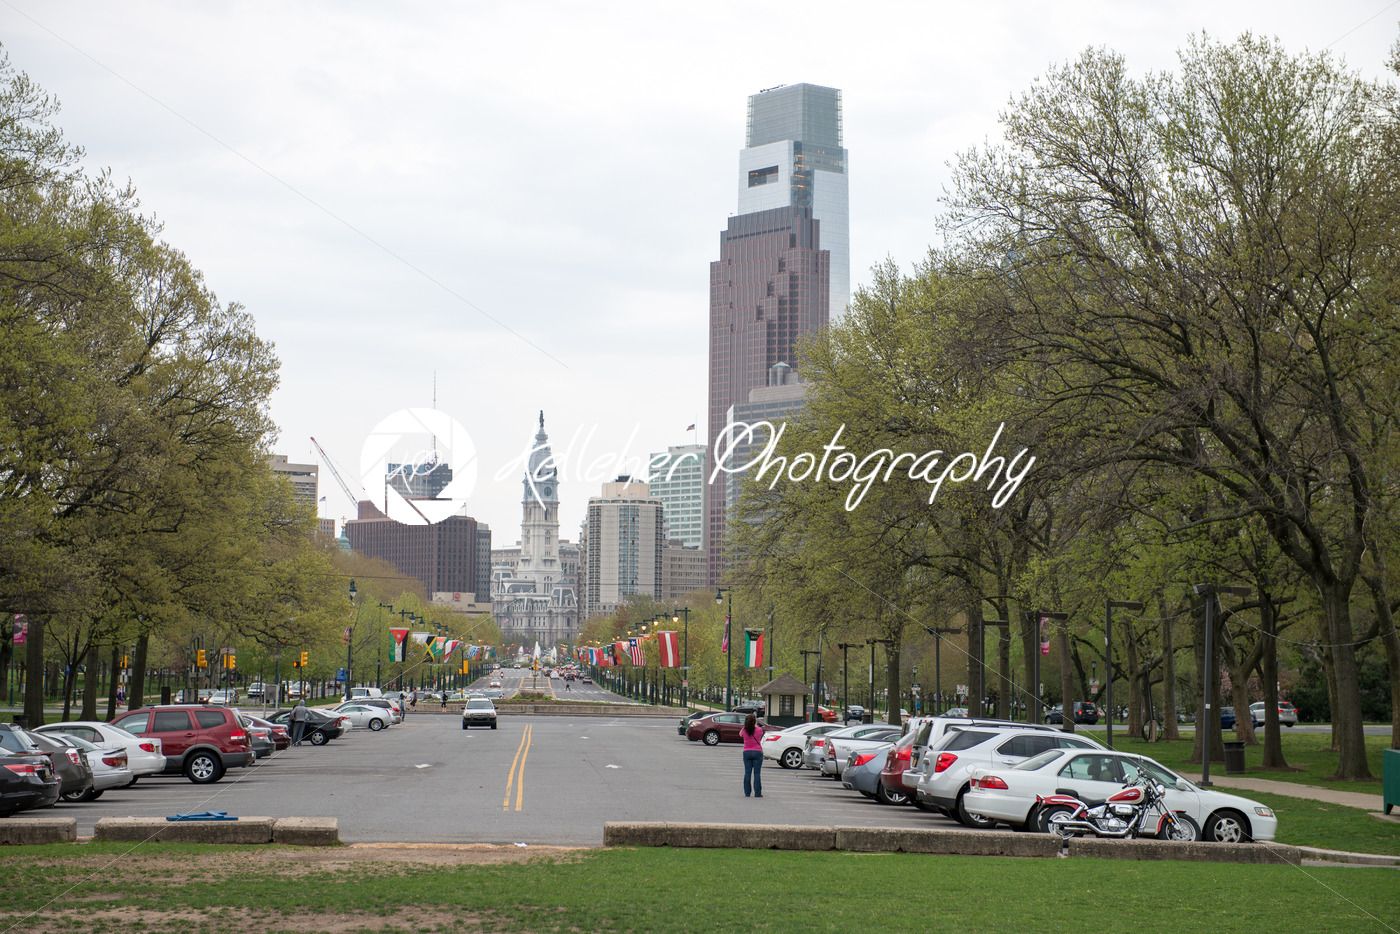 PHILADELPHIA, PA – APRIL 19: Benjamin Franklin Parkway from the Philadelphia Museum of Art with Center City skyscraper buildings in the background on April 19, 2013 - Kelleher Photography Store